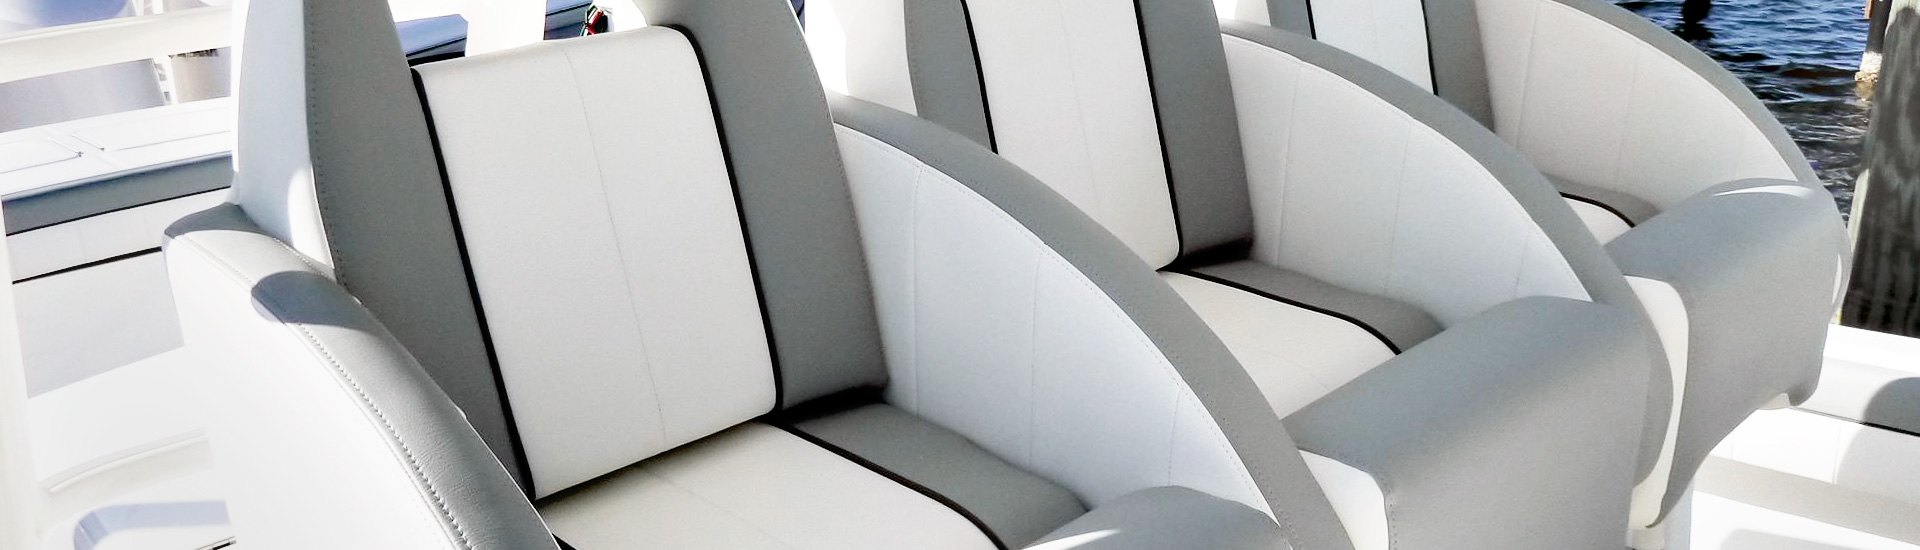 Boat Seating & Accessories | Boat Seats, Pedestals, Covers, Benches